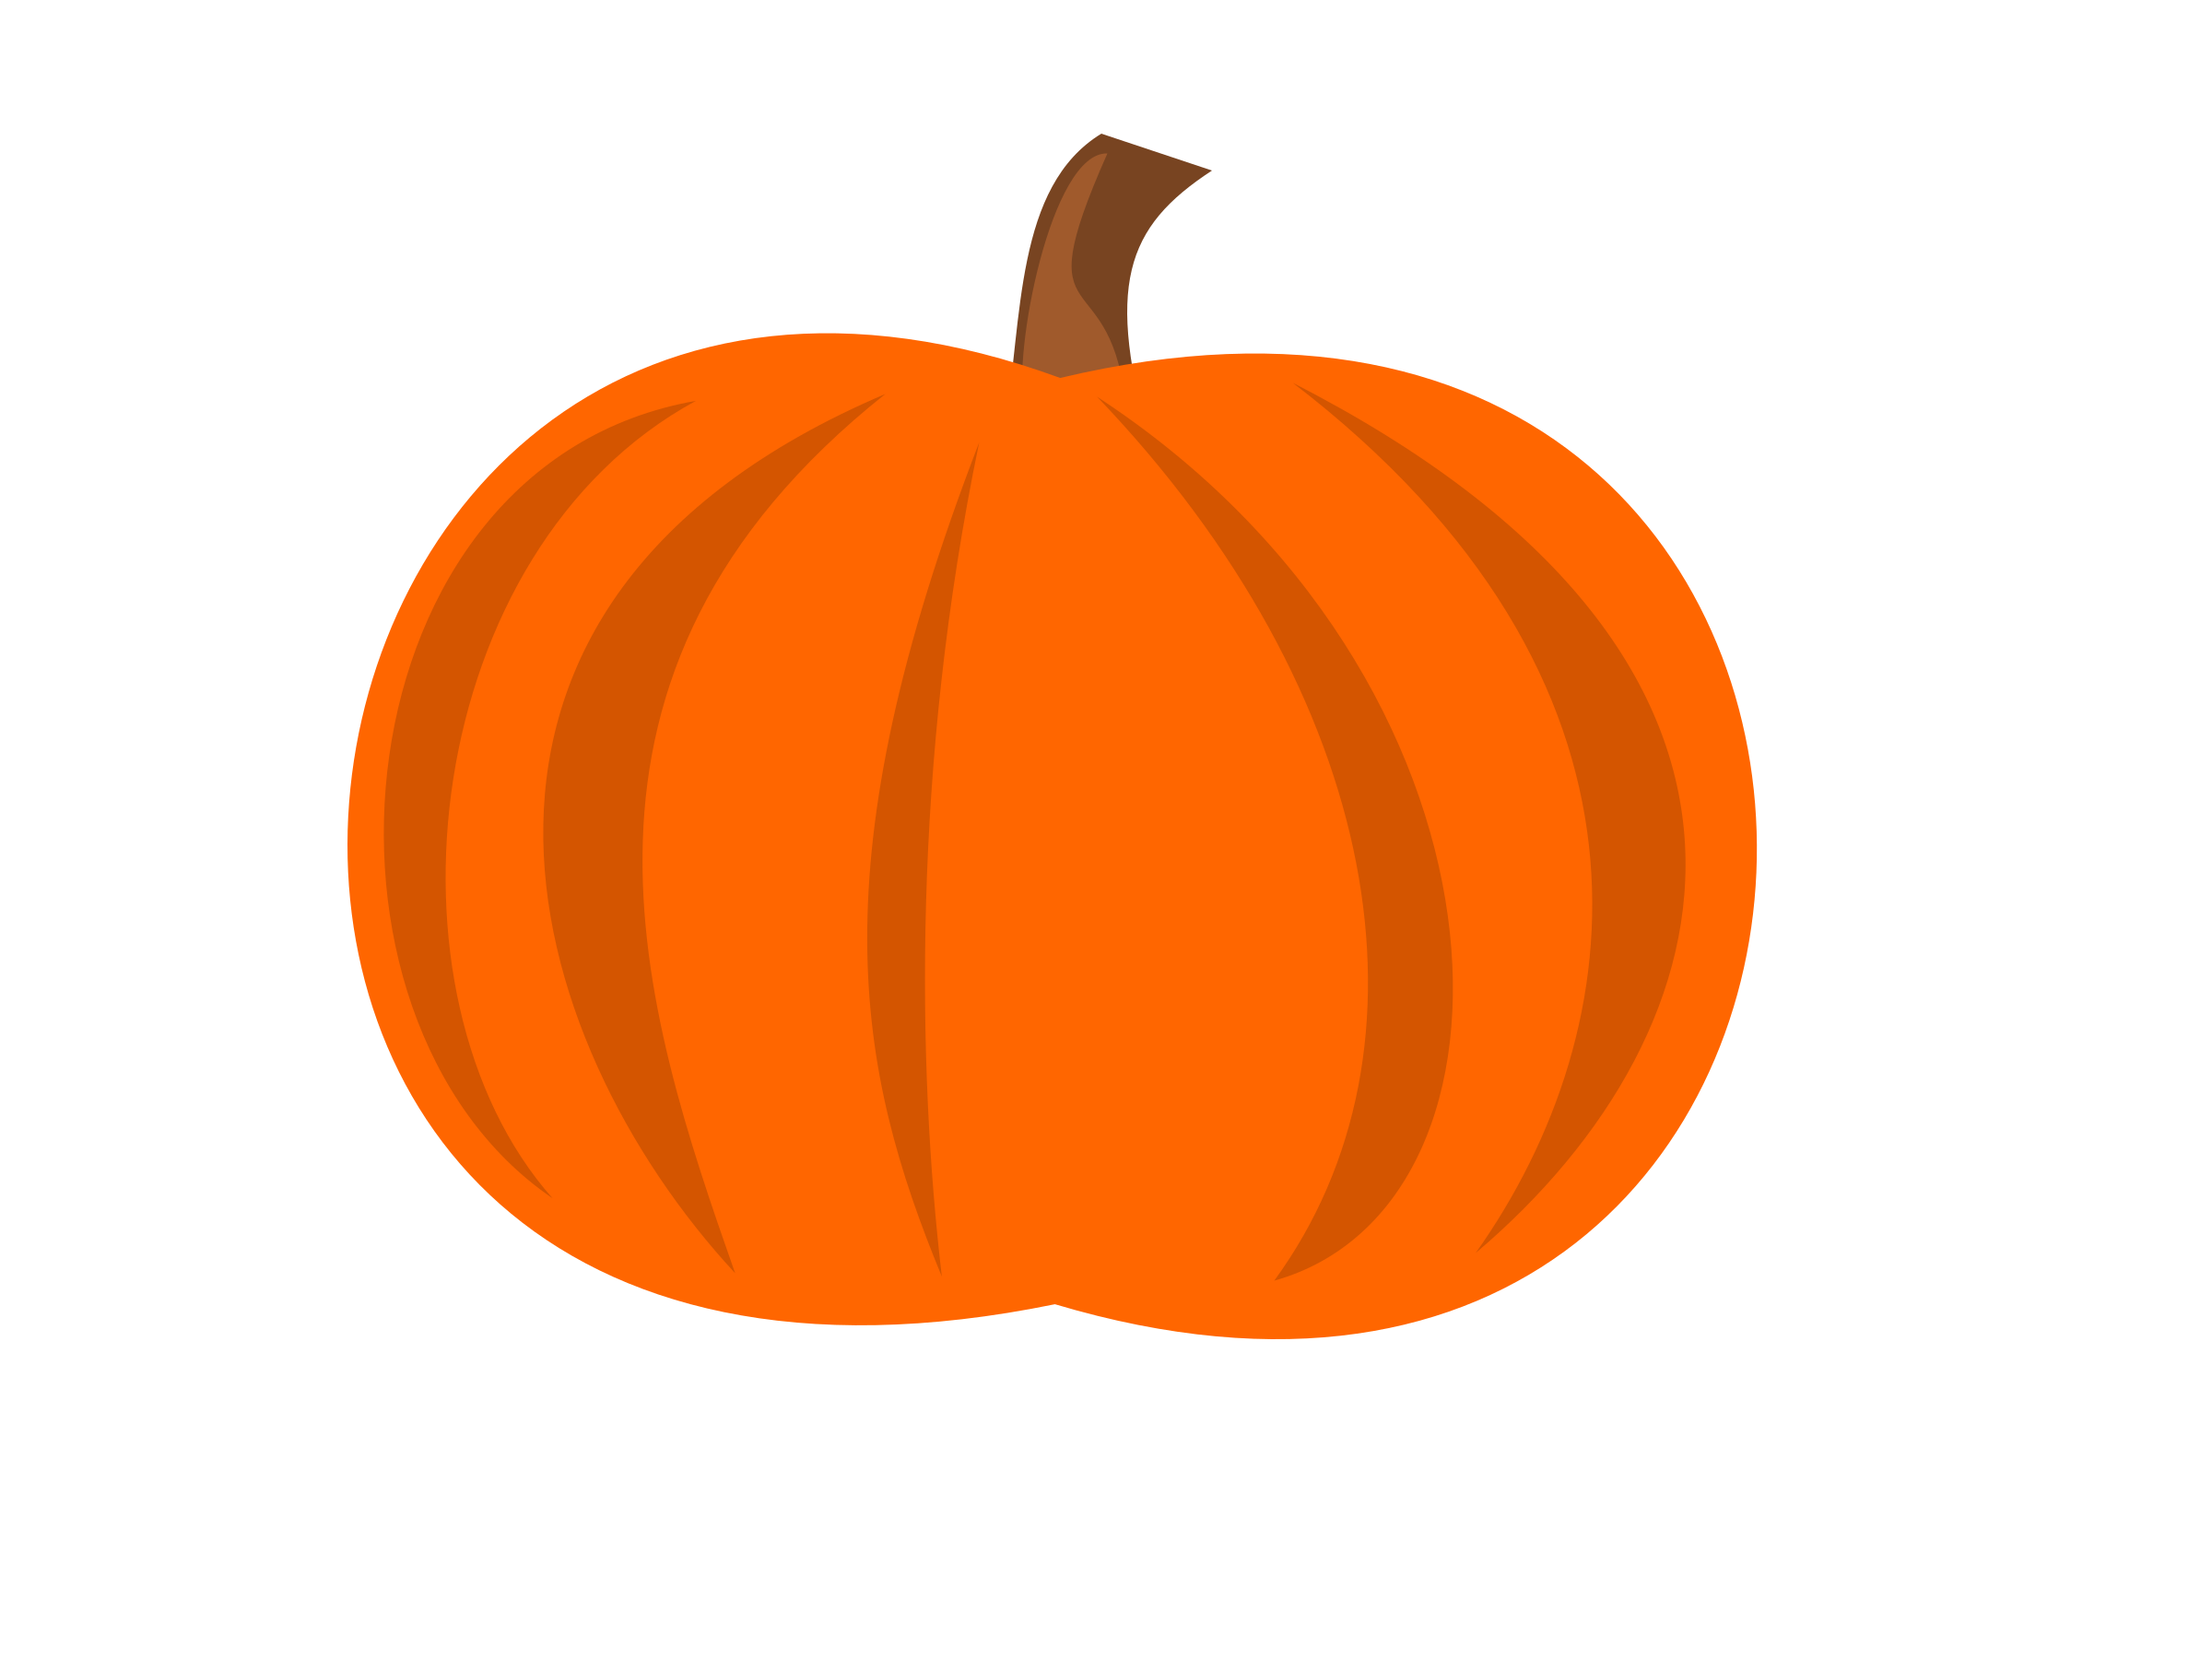 Plain Pumpkin by stevepetmonkey